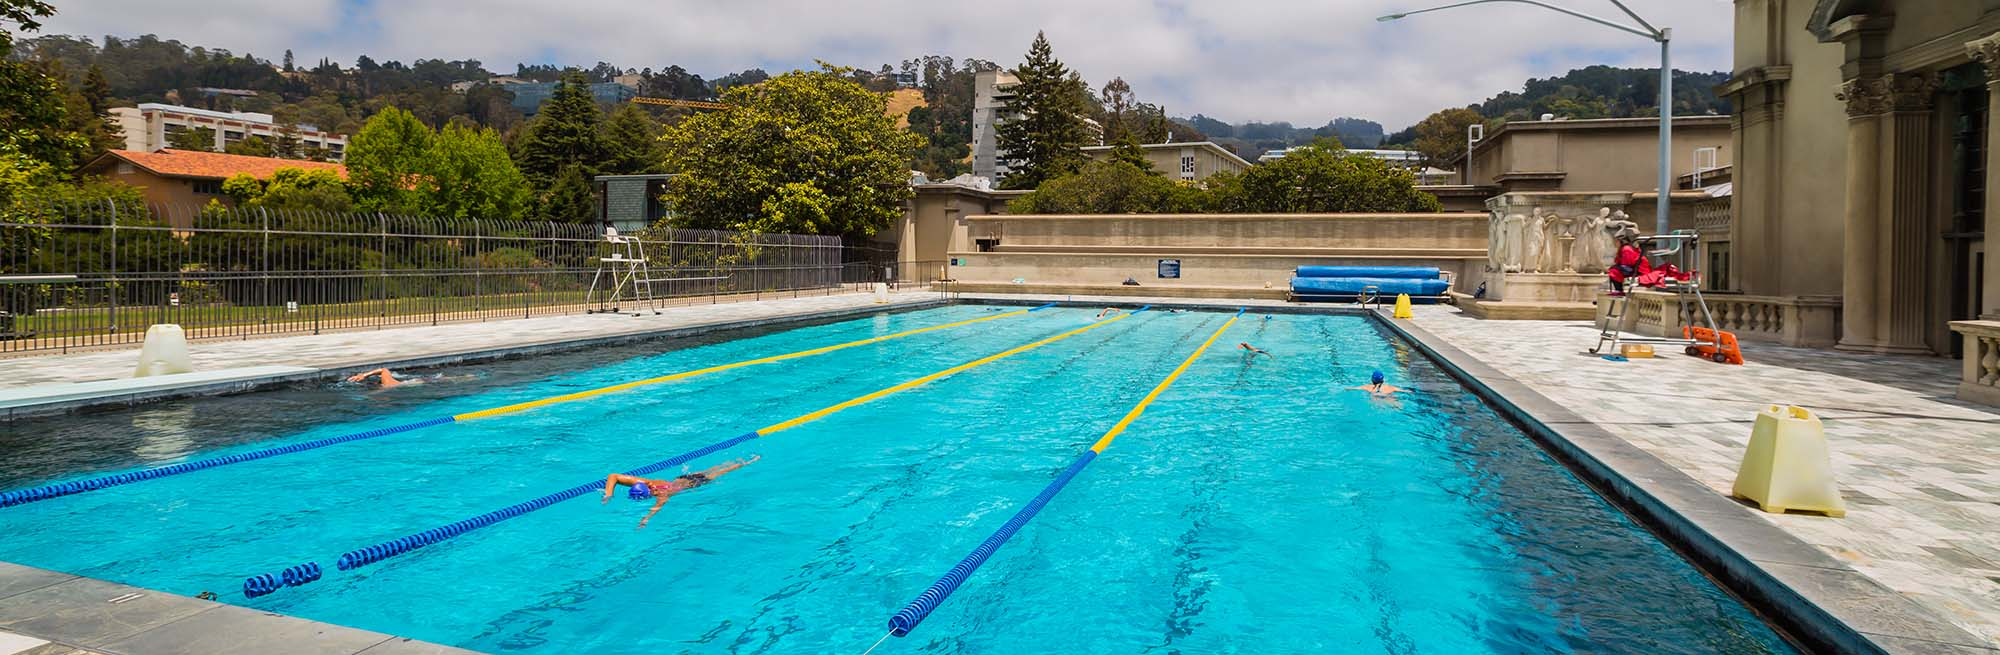 5438097-pool-images